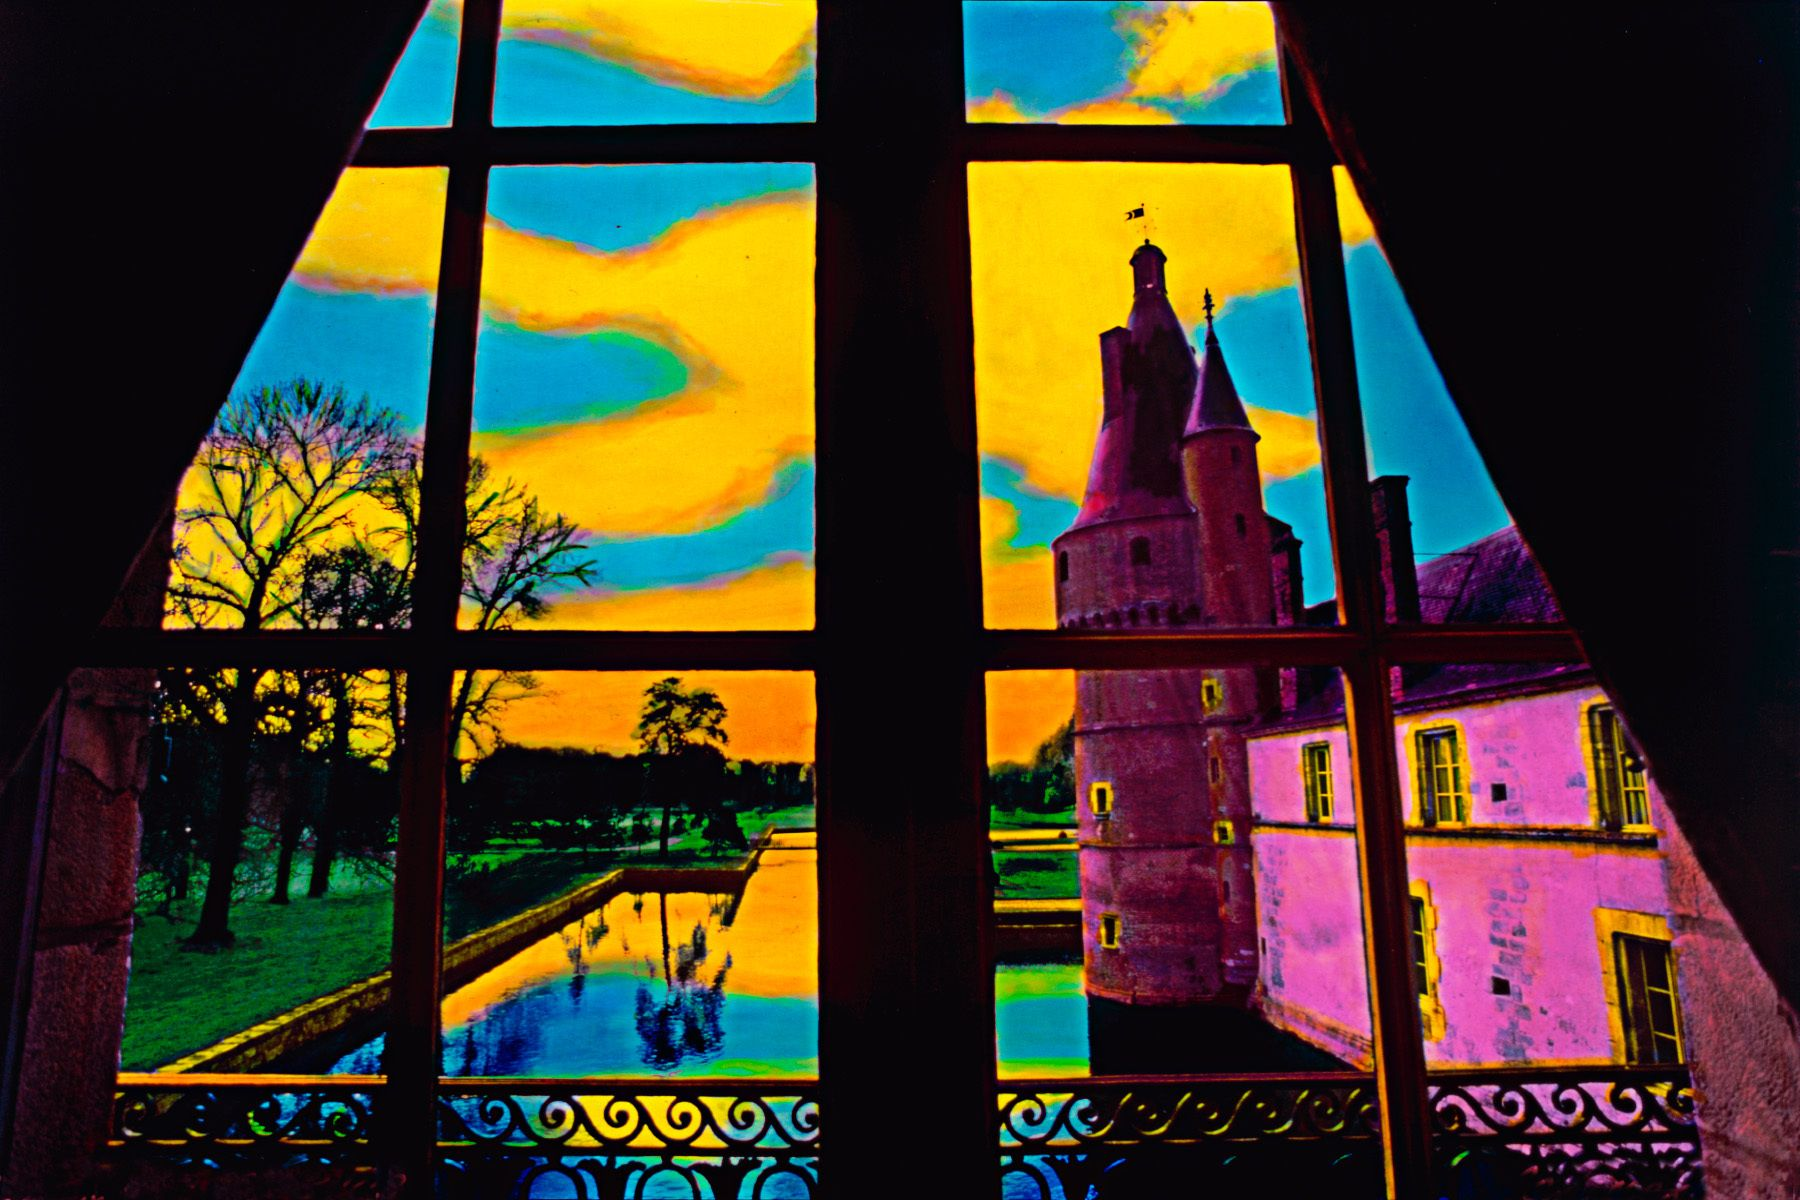 8_0_71_1f_gottlieb_chateau_window.jpg